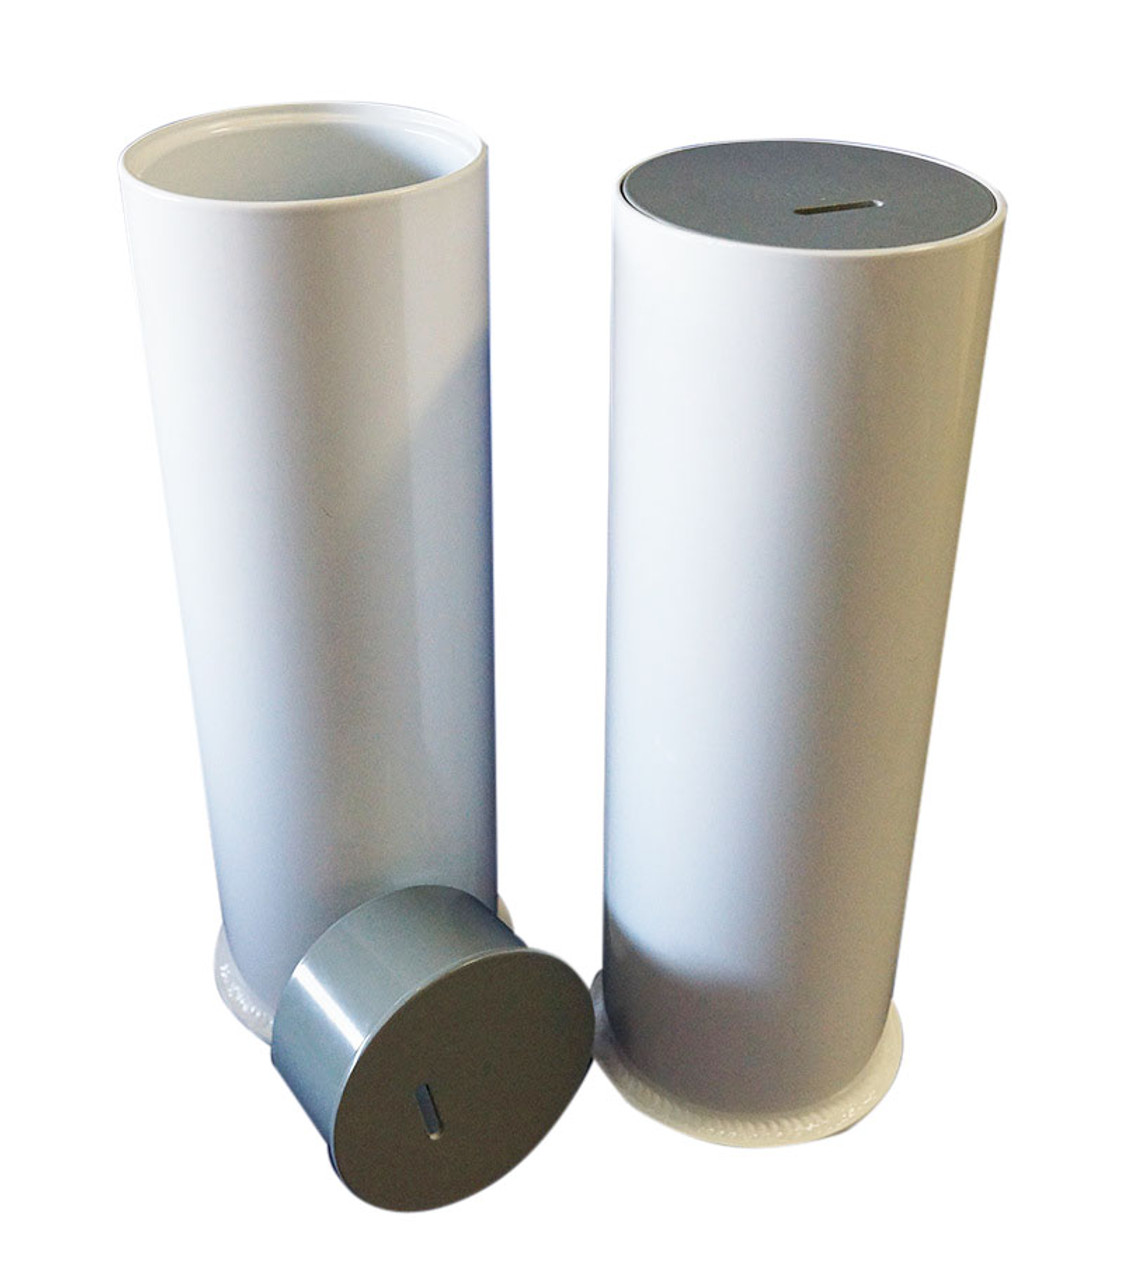 Hs New C 3 5 Quot And Hs New C 3 Quot Hard Surface Floor Socket